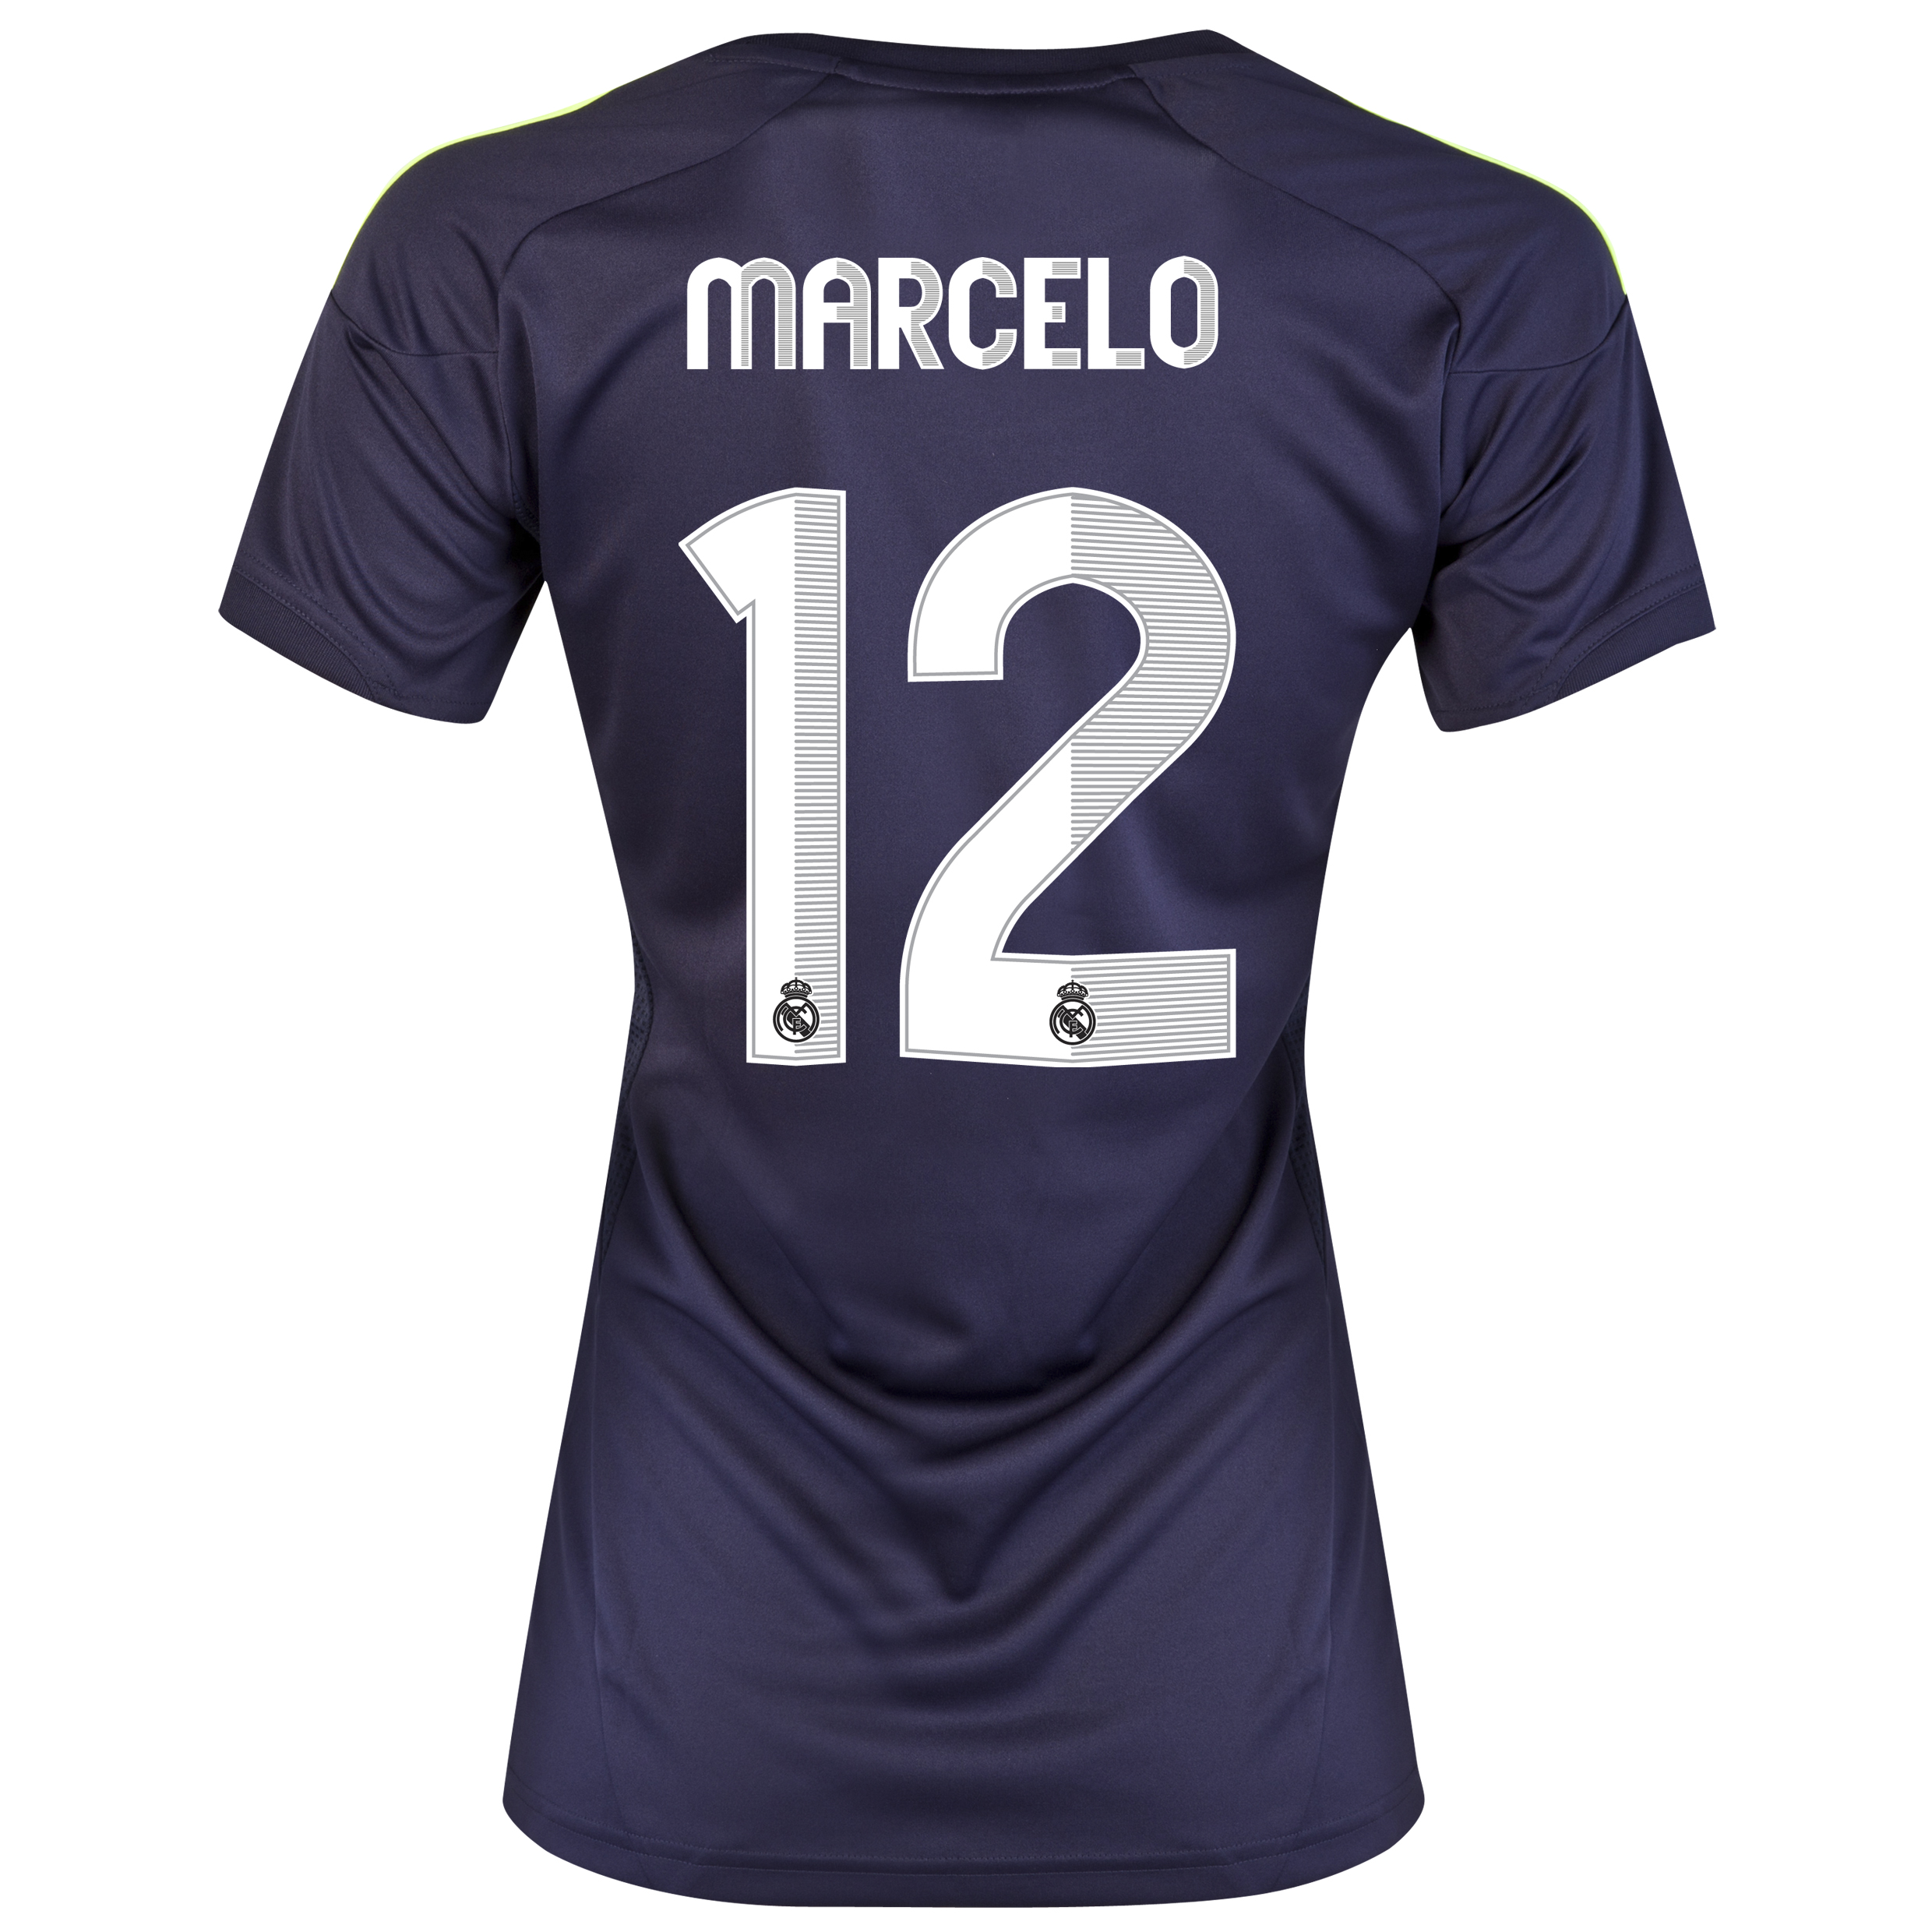 Camiseta visitante Real Madrid 2012/13 con impresin 12 Marcelo - Mujer